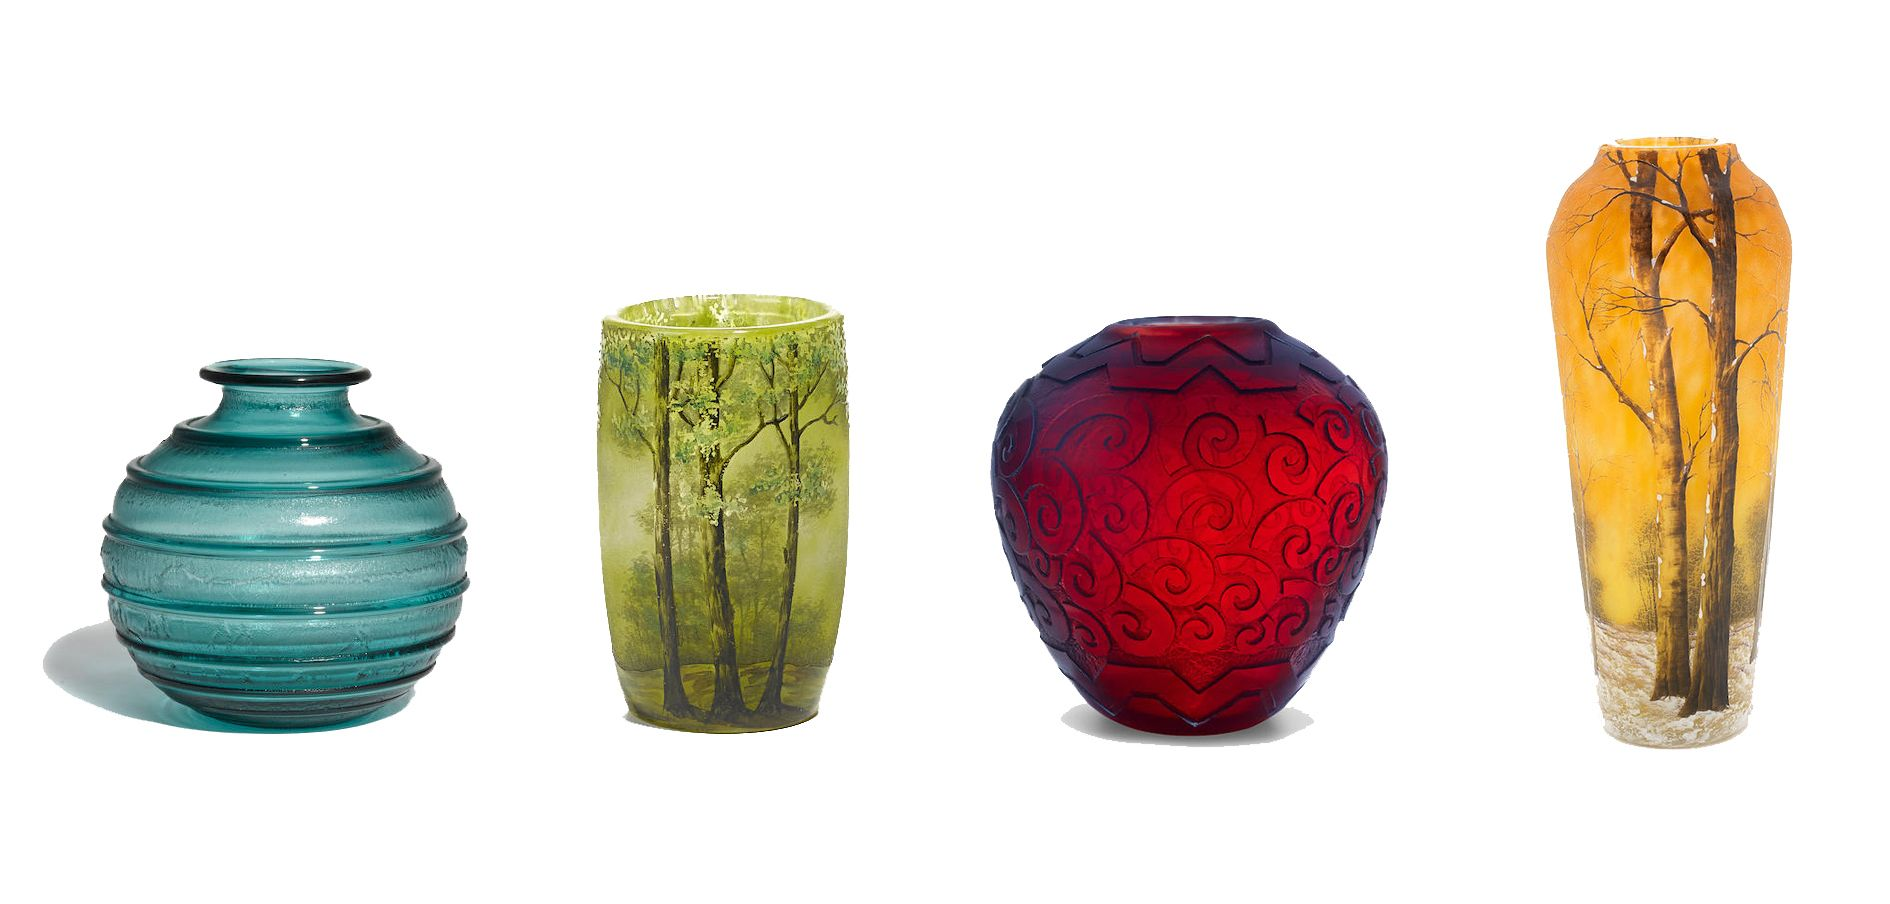 A defining designer of the Art Nouveau era, Daum glass offers some of the most coveted art glass in the market, from cameo glass to pâte-de-verre pieces.